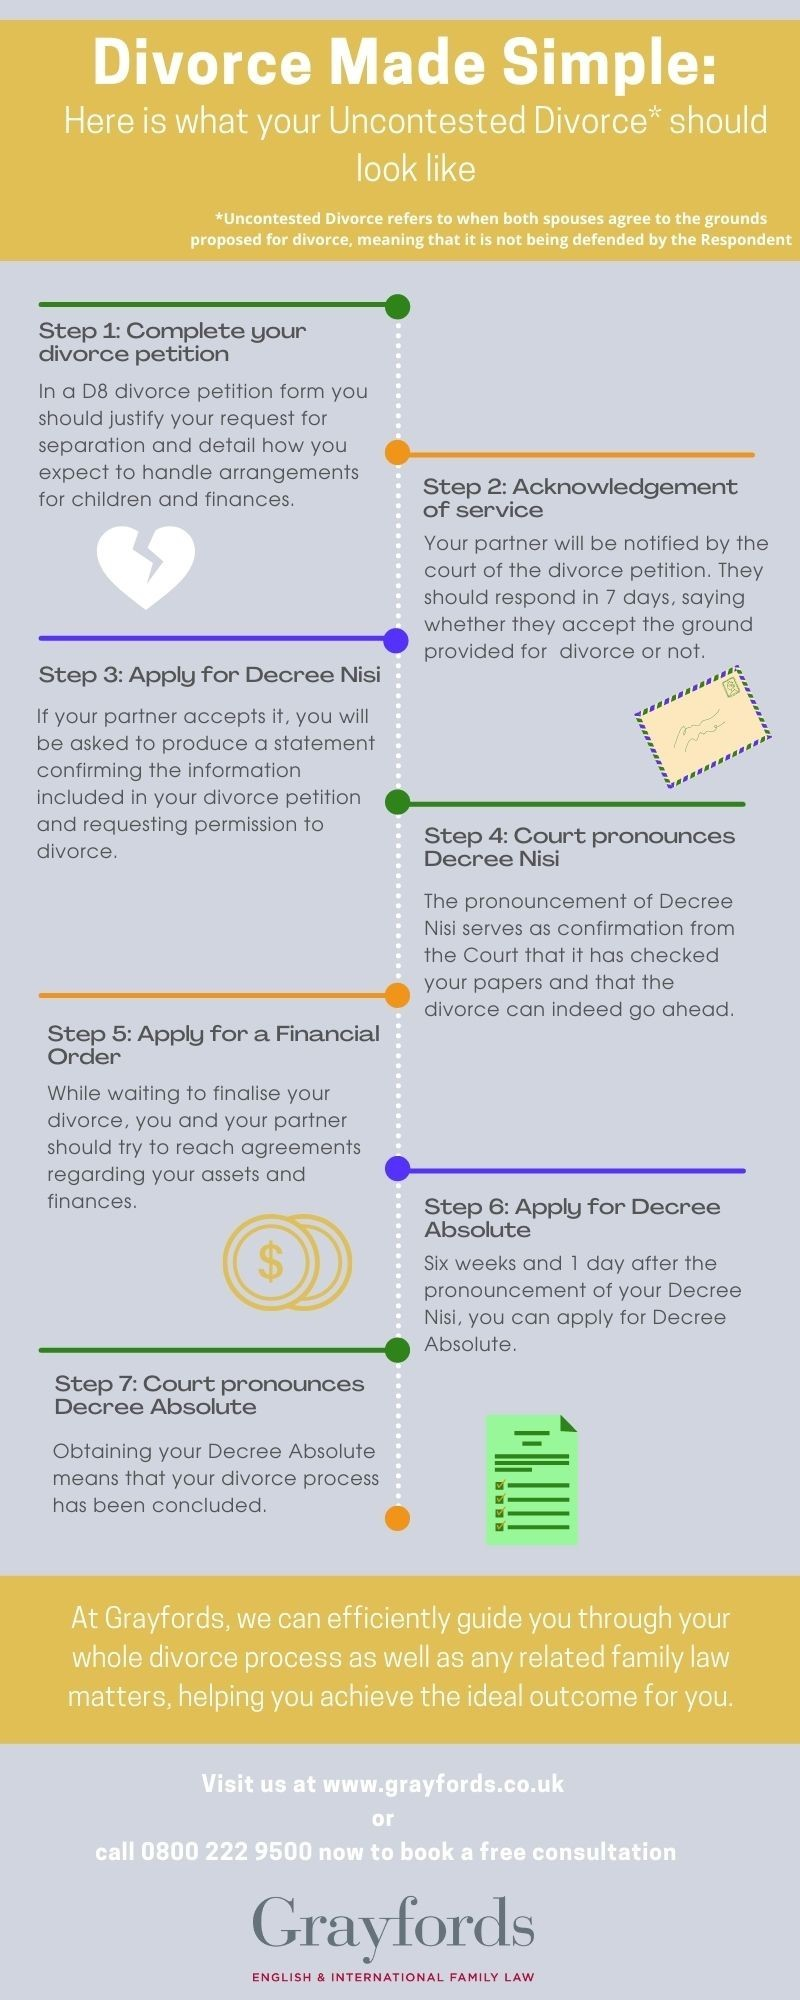 Divorce made simple: uncontested divorces